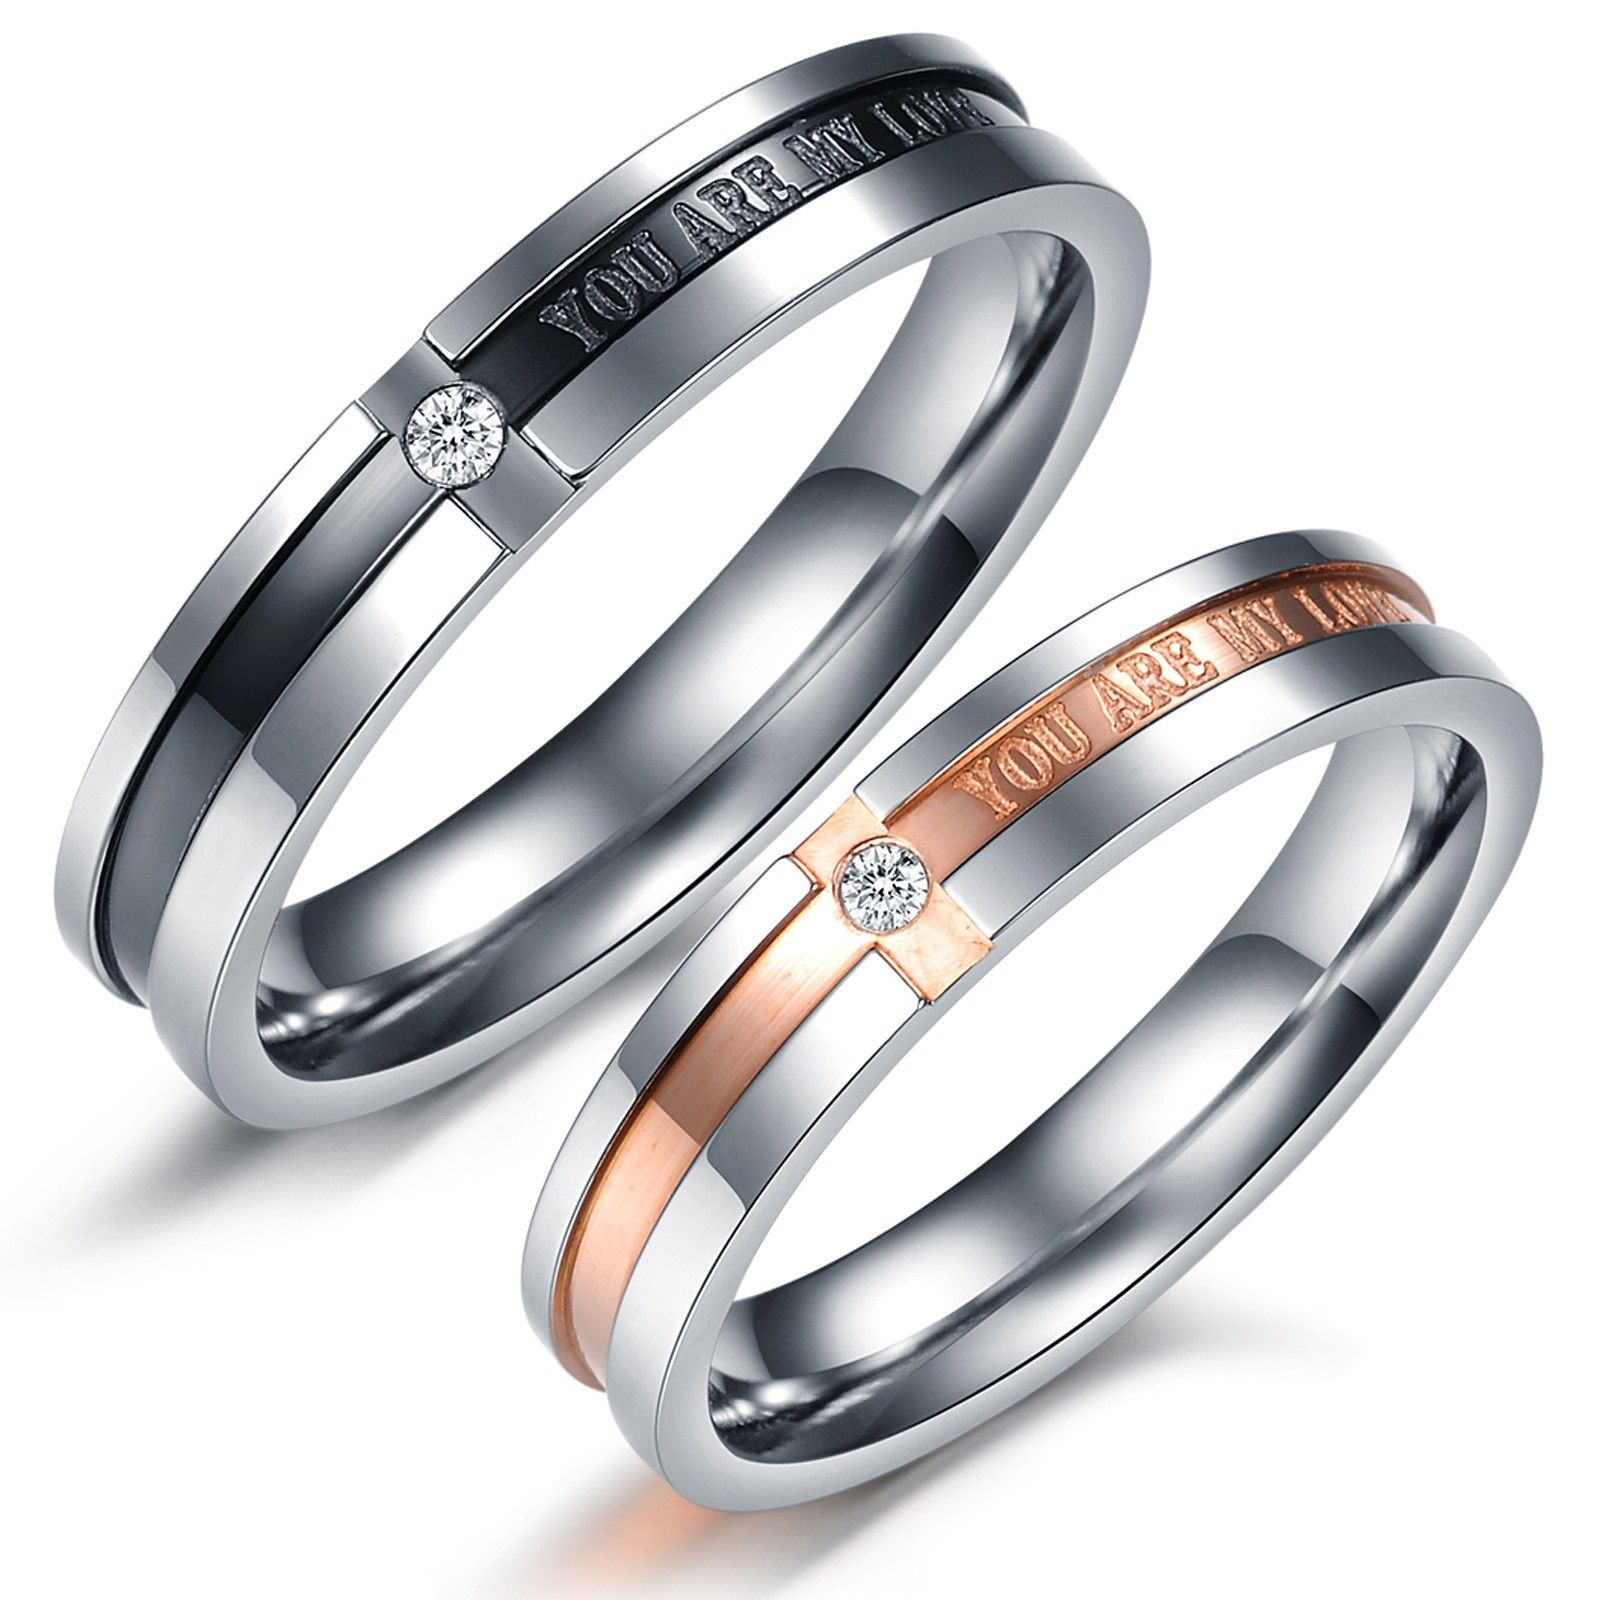 gay wedding bands Simple bu elegant couples rings Matching Couple Titanium Steel Engagement Promise Ring Wedding Bands